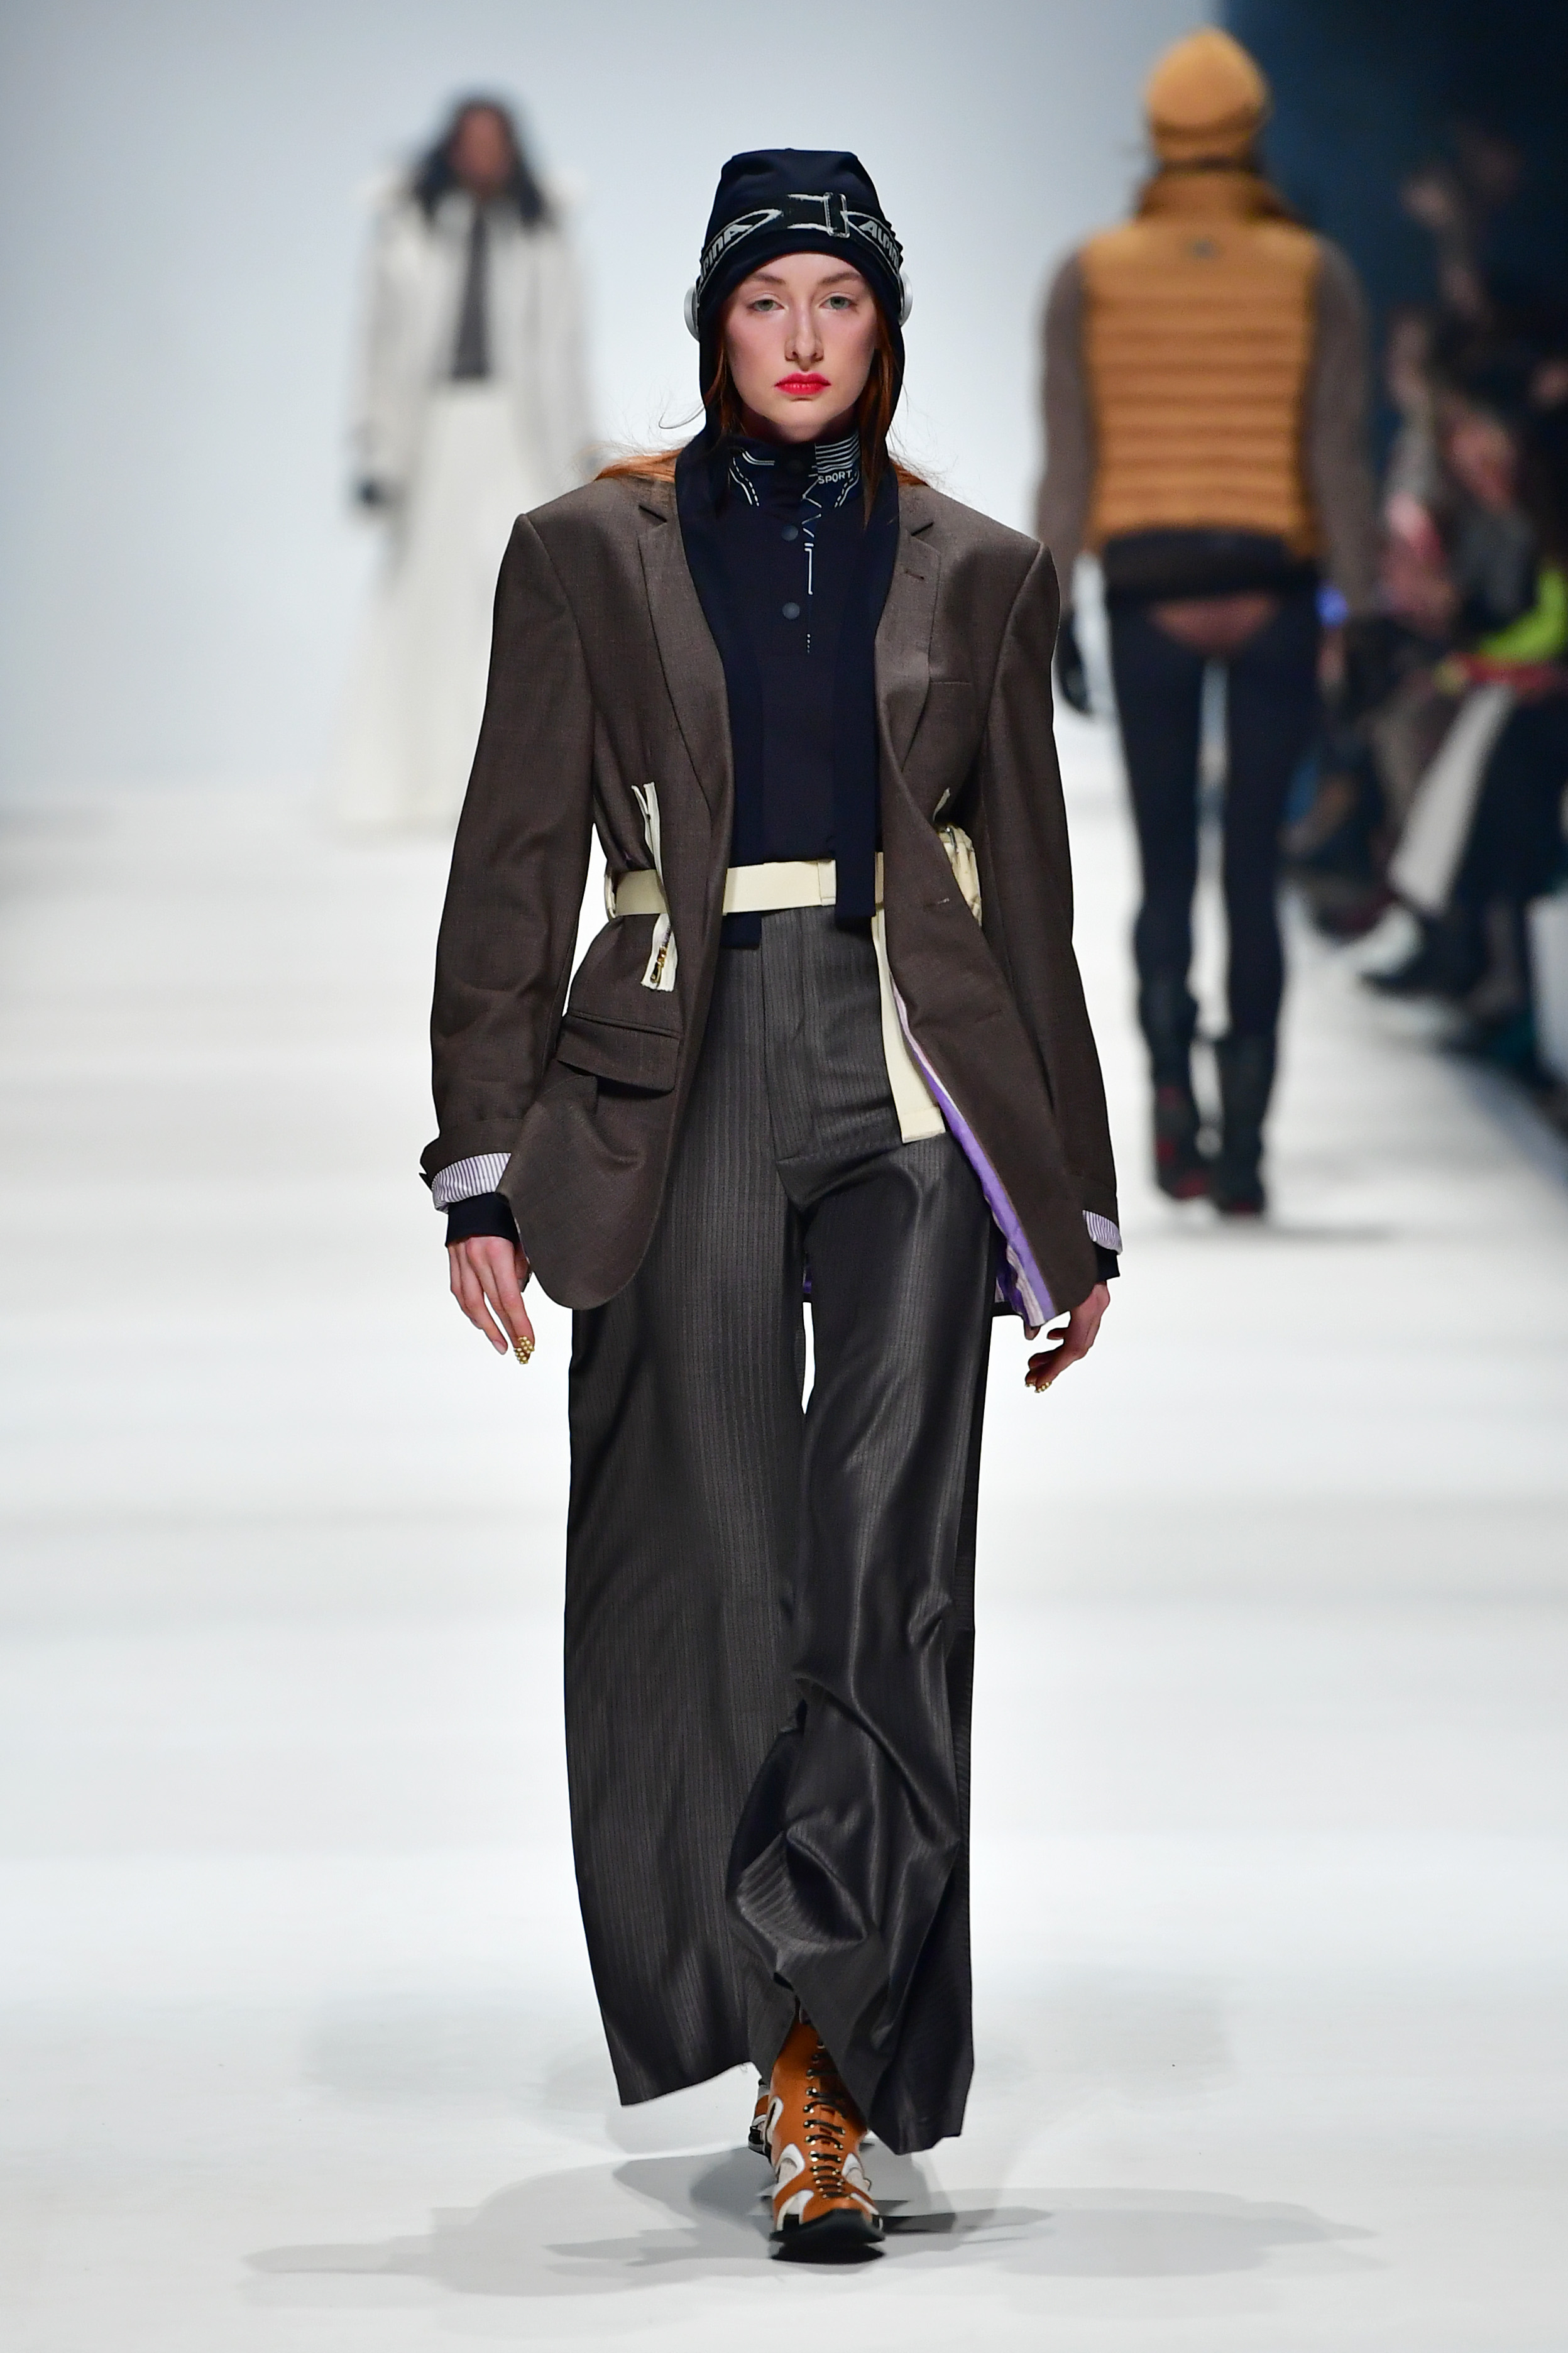 BERLIN, GERMANY - JANUARY 14: A model wearing a blazer by Aftermarch, top by Recto Verso, trousers by Brachmann, hat by Spatz Hutdesign, bag by Wayks, goggles by Stylist's own, socks by Swedish Stockings and shoes by Balluta walks the runway at the Neonyt show during Berlin Fashion Week Autumn/Winter 2020 at Kraftwerk Mitte on January 14, 2020 in Berlin, Germany. (Photo by Alexander Koerner/Getty Images for MBFW)